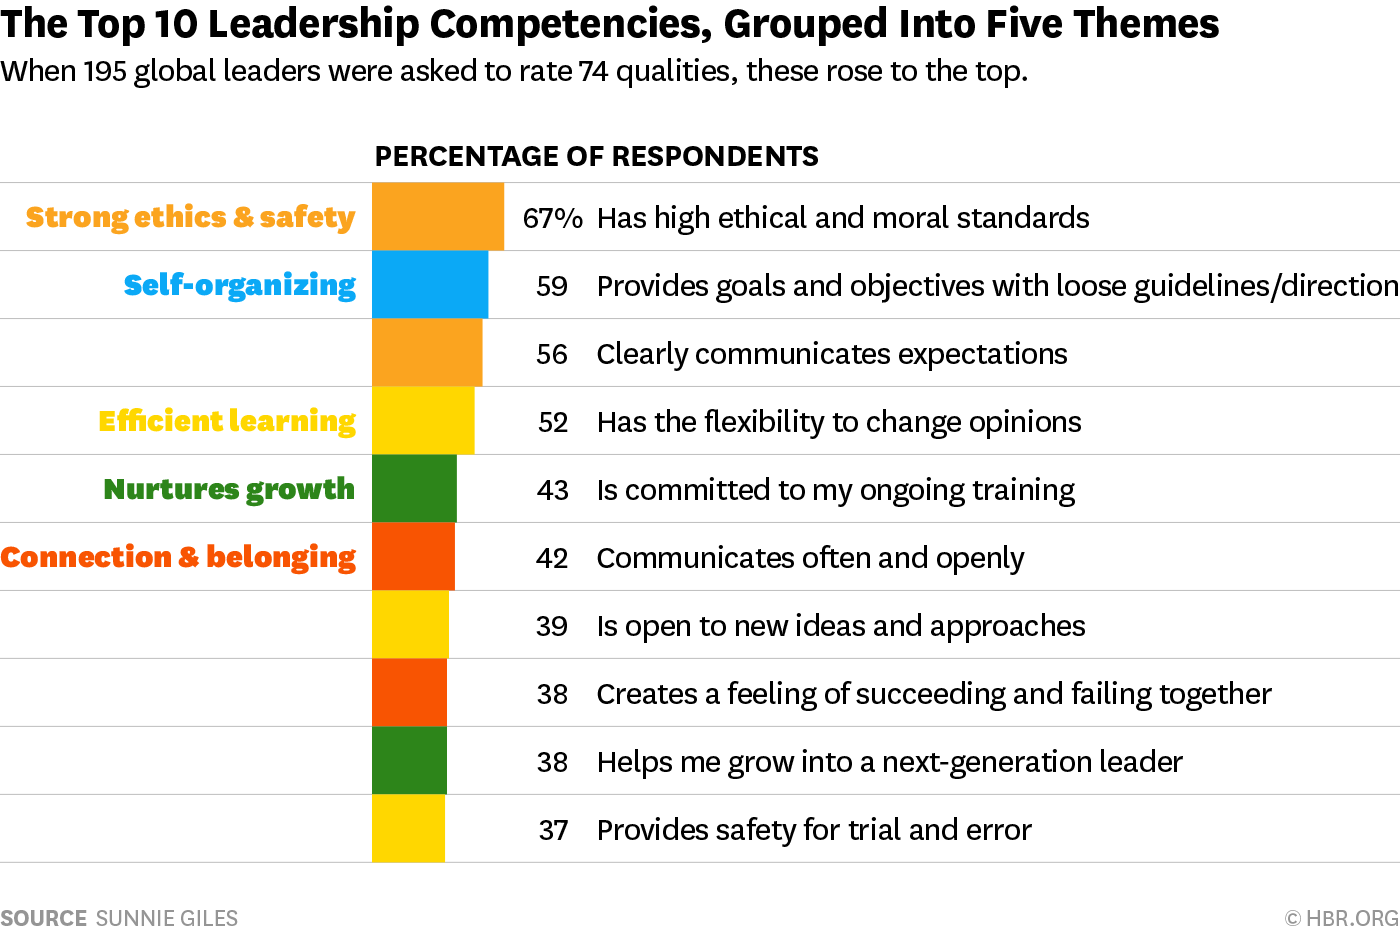 An evaluation essay on current conceptions of effective leadership